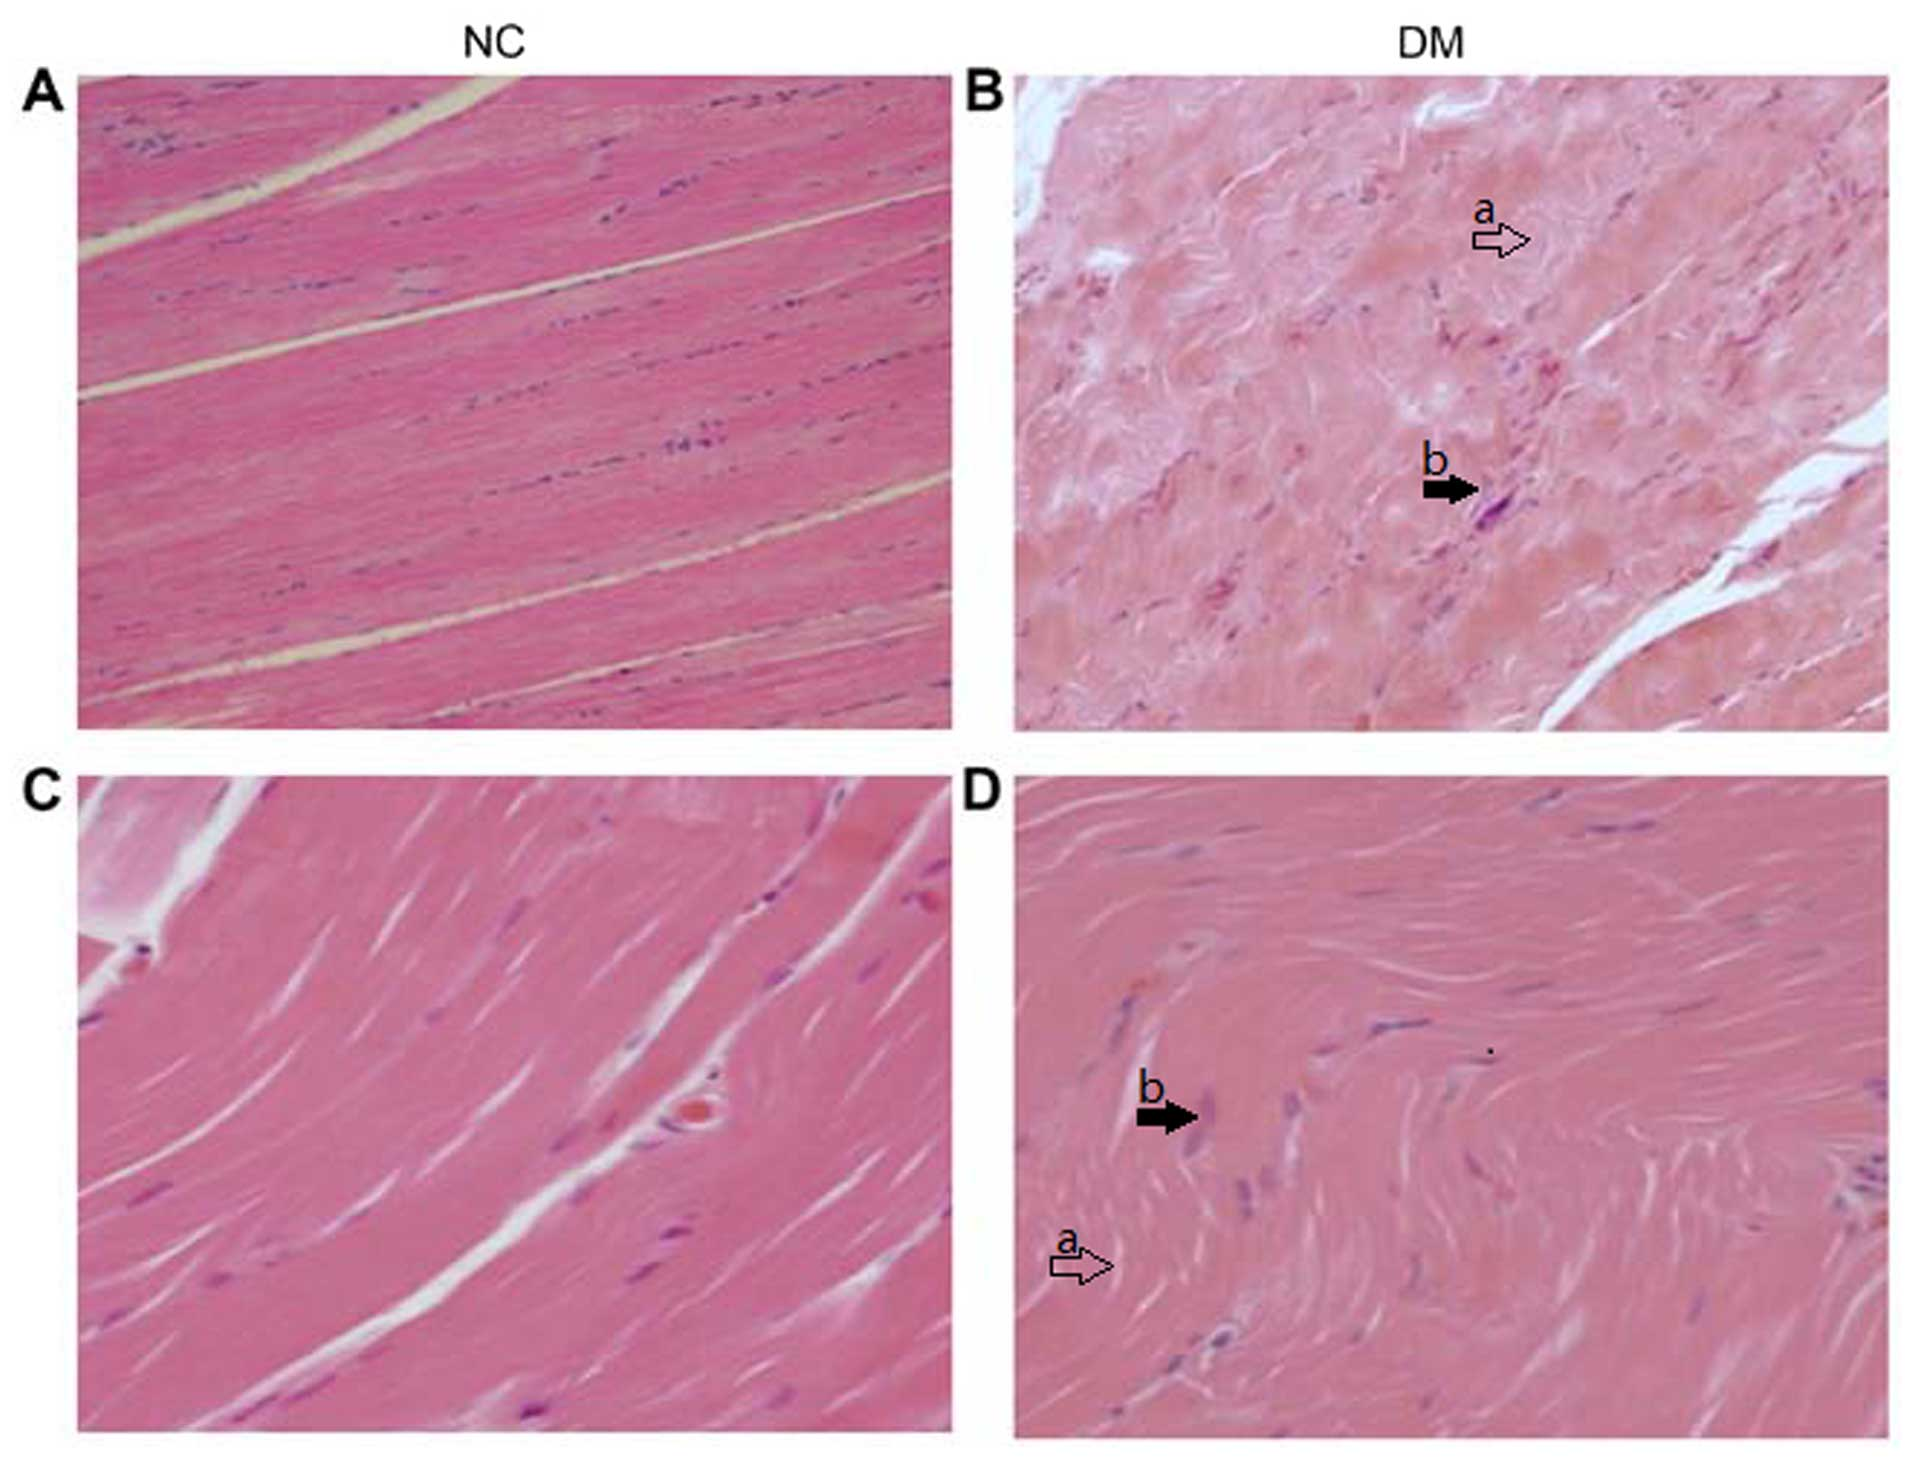 Celastrol Attenuates Oxidative Stress In The Skeletal Muscle Of